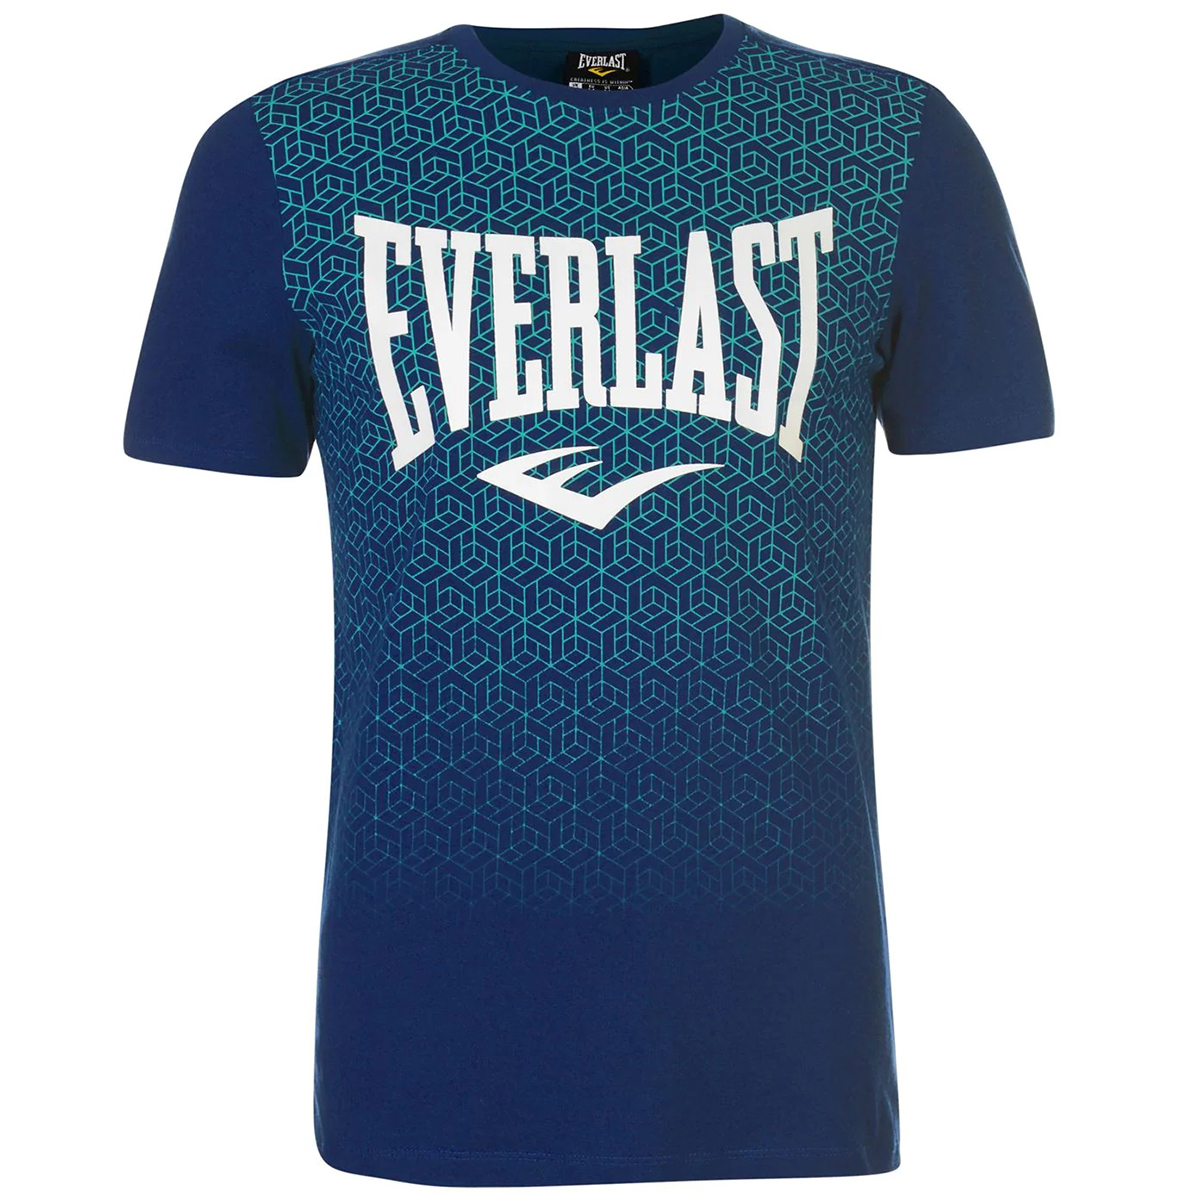 Everlast Men's Geo Print Short-Sleeve Tee - Blue, M